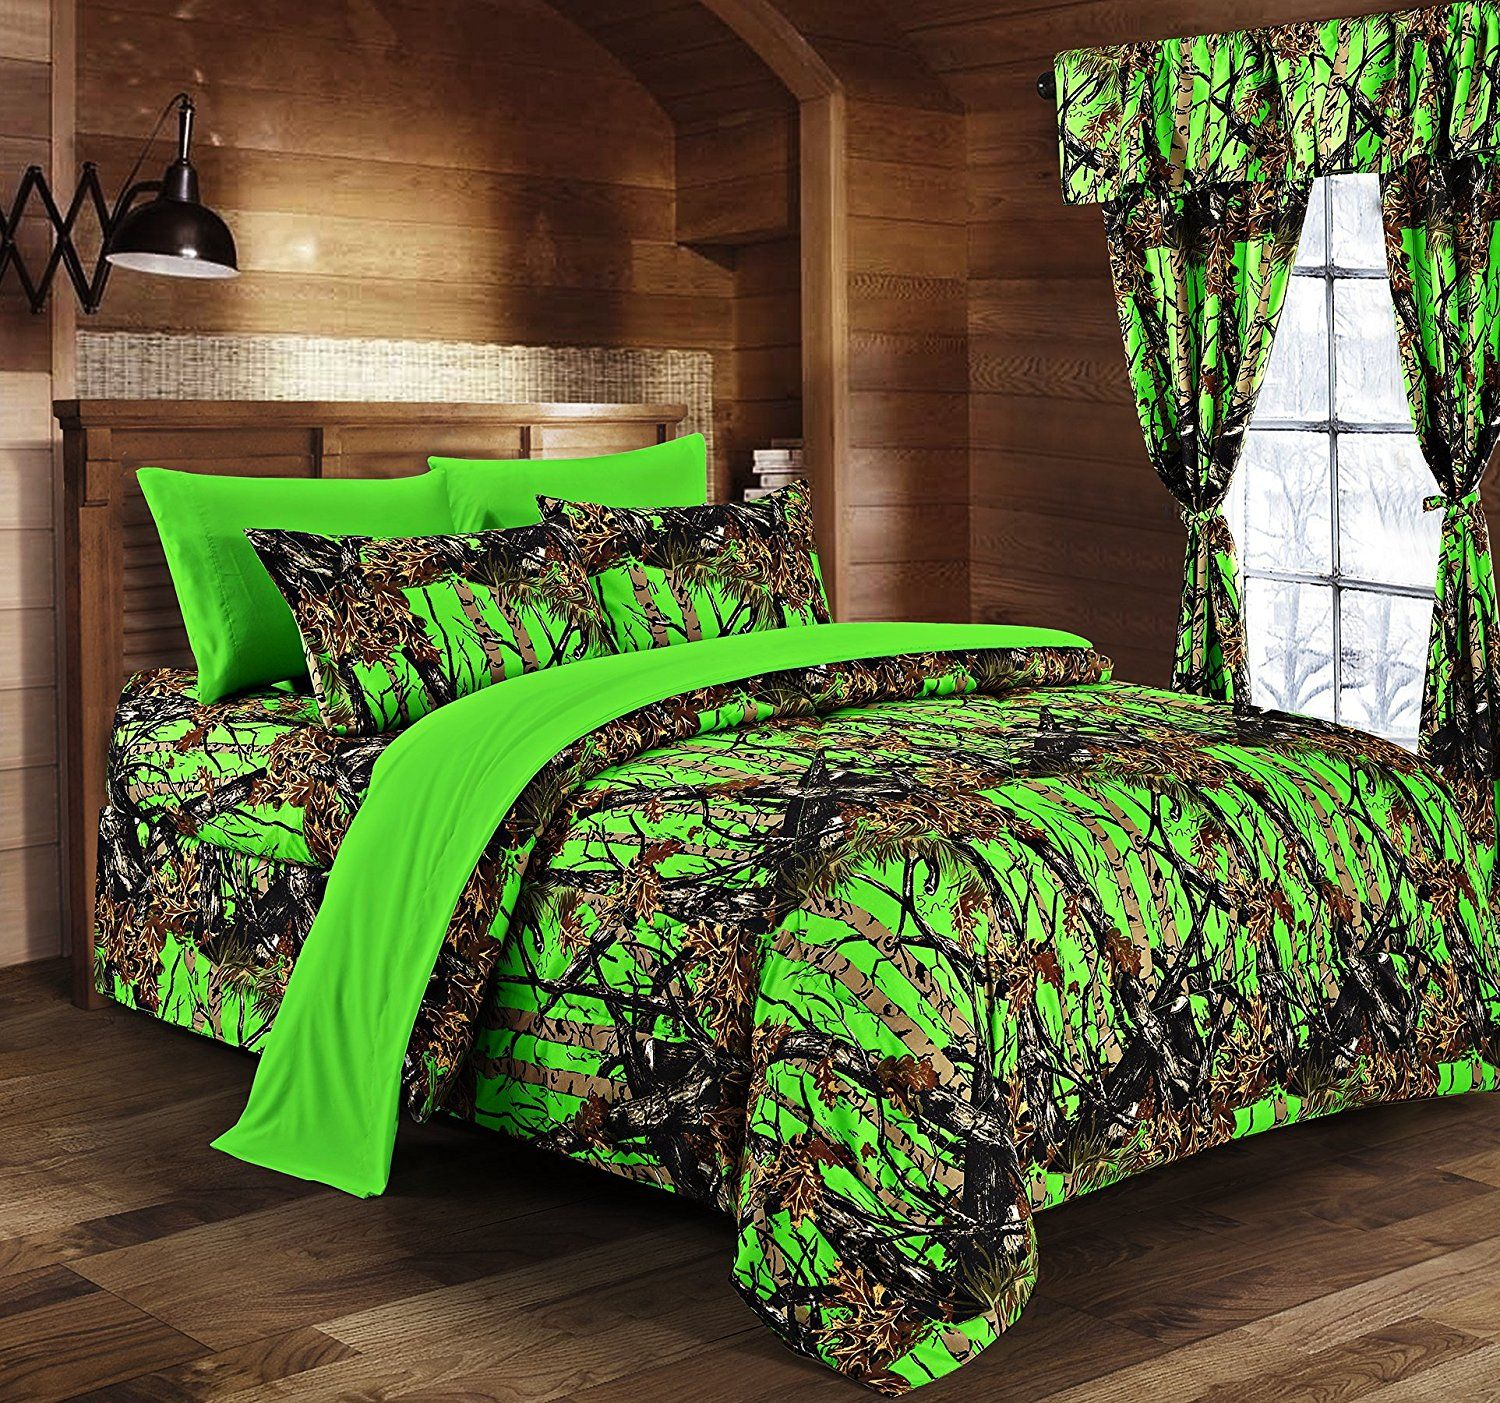 quilt lodge greenland home cabin larger view moose cabins full com dp set queen amazon comforters